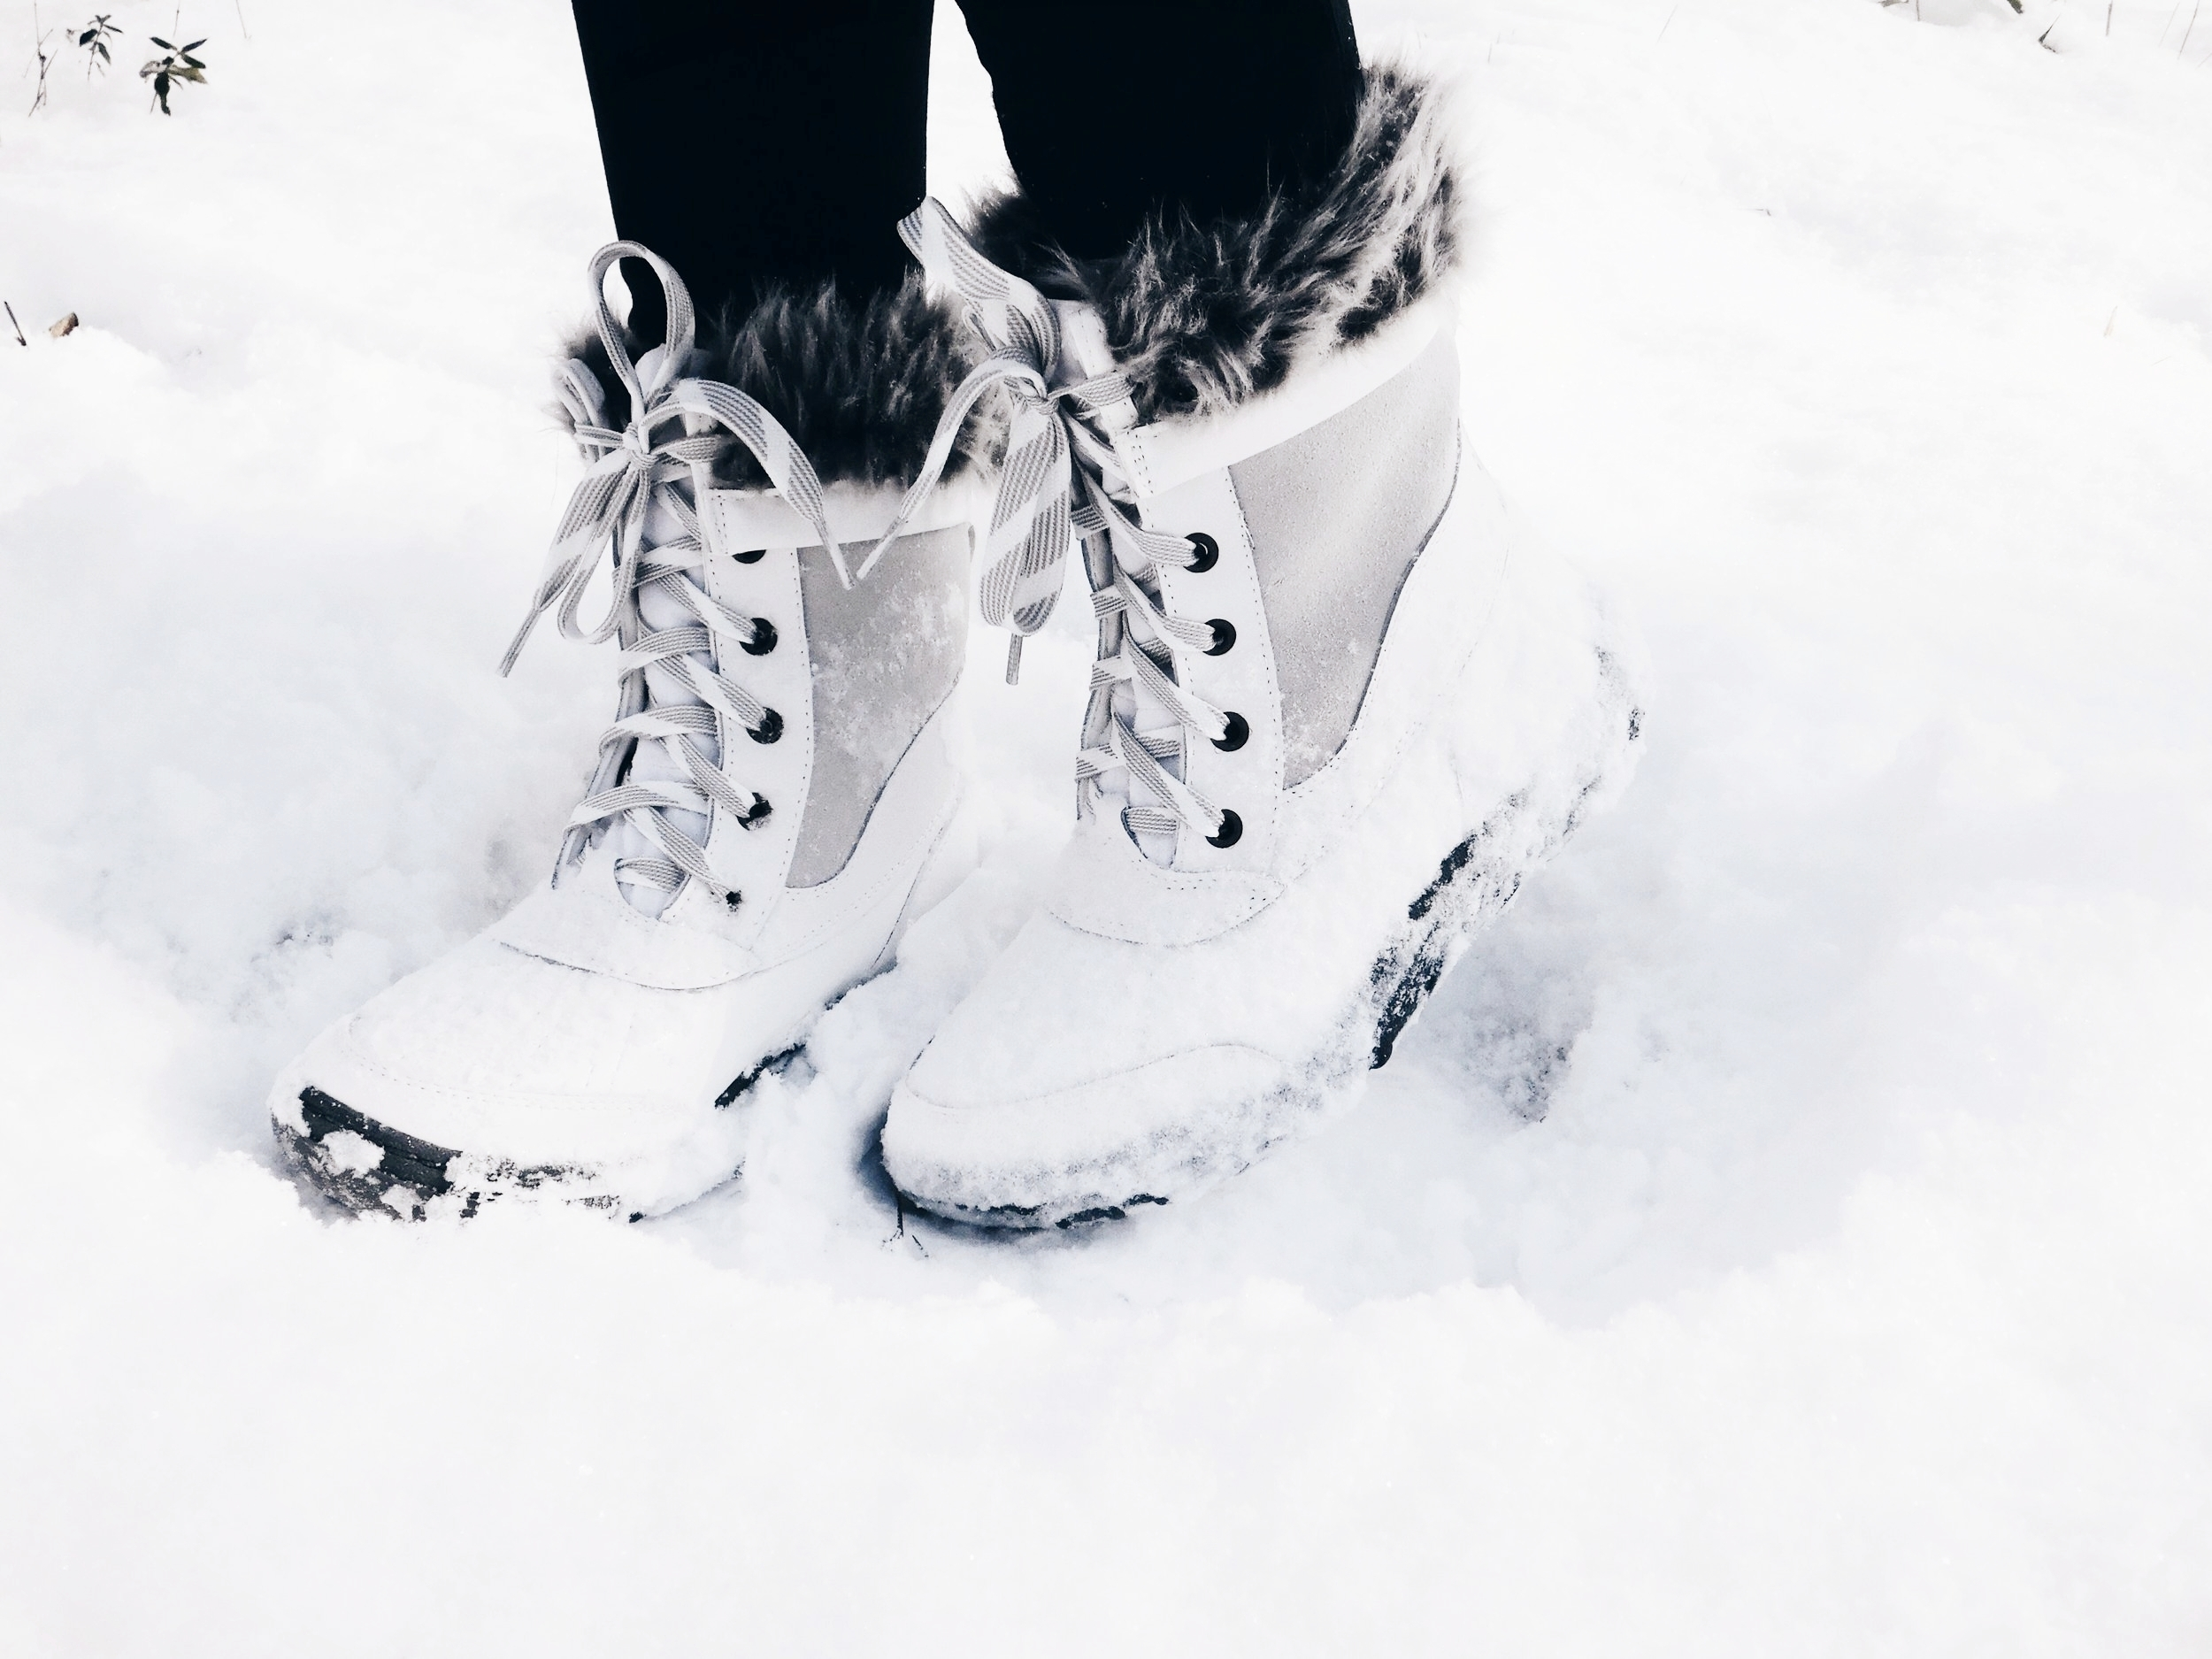 Get these leather  snow boots  on SALE for on $20 now!